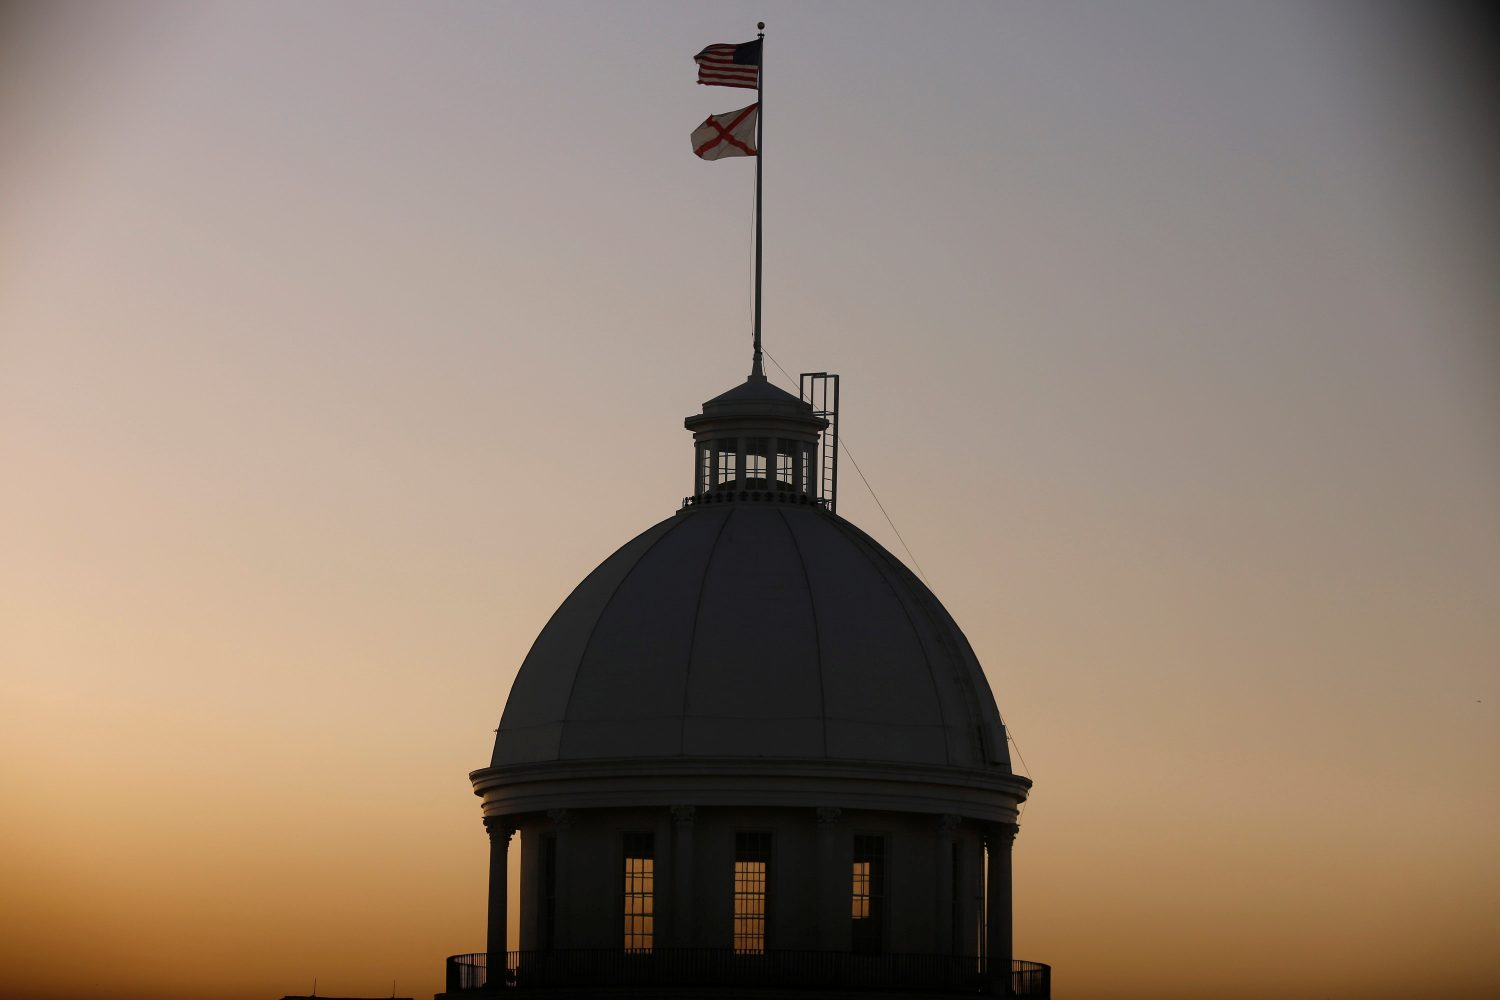 FILE PHOTO: The U.S. Flag and Alabama State Flag fly over the Alabama Governor's Mansion as the state Senate votes on the strictest anti-abortion bill in the United States at the Alabama Legislature in Montgomery, Alabama, U.S. May 14, 2019. REUTERS/Chris Aluka Berry